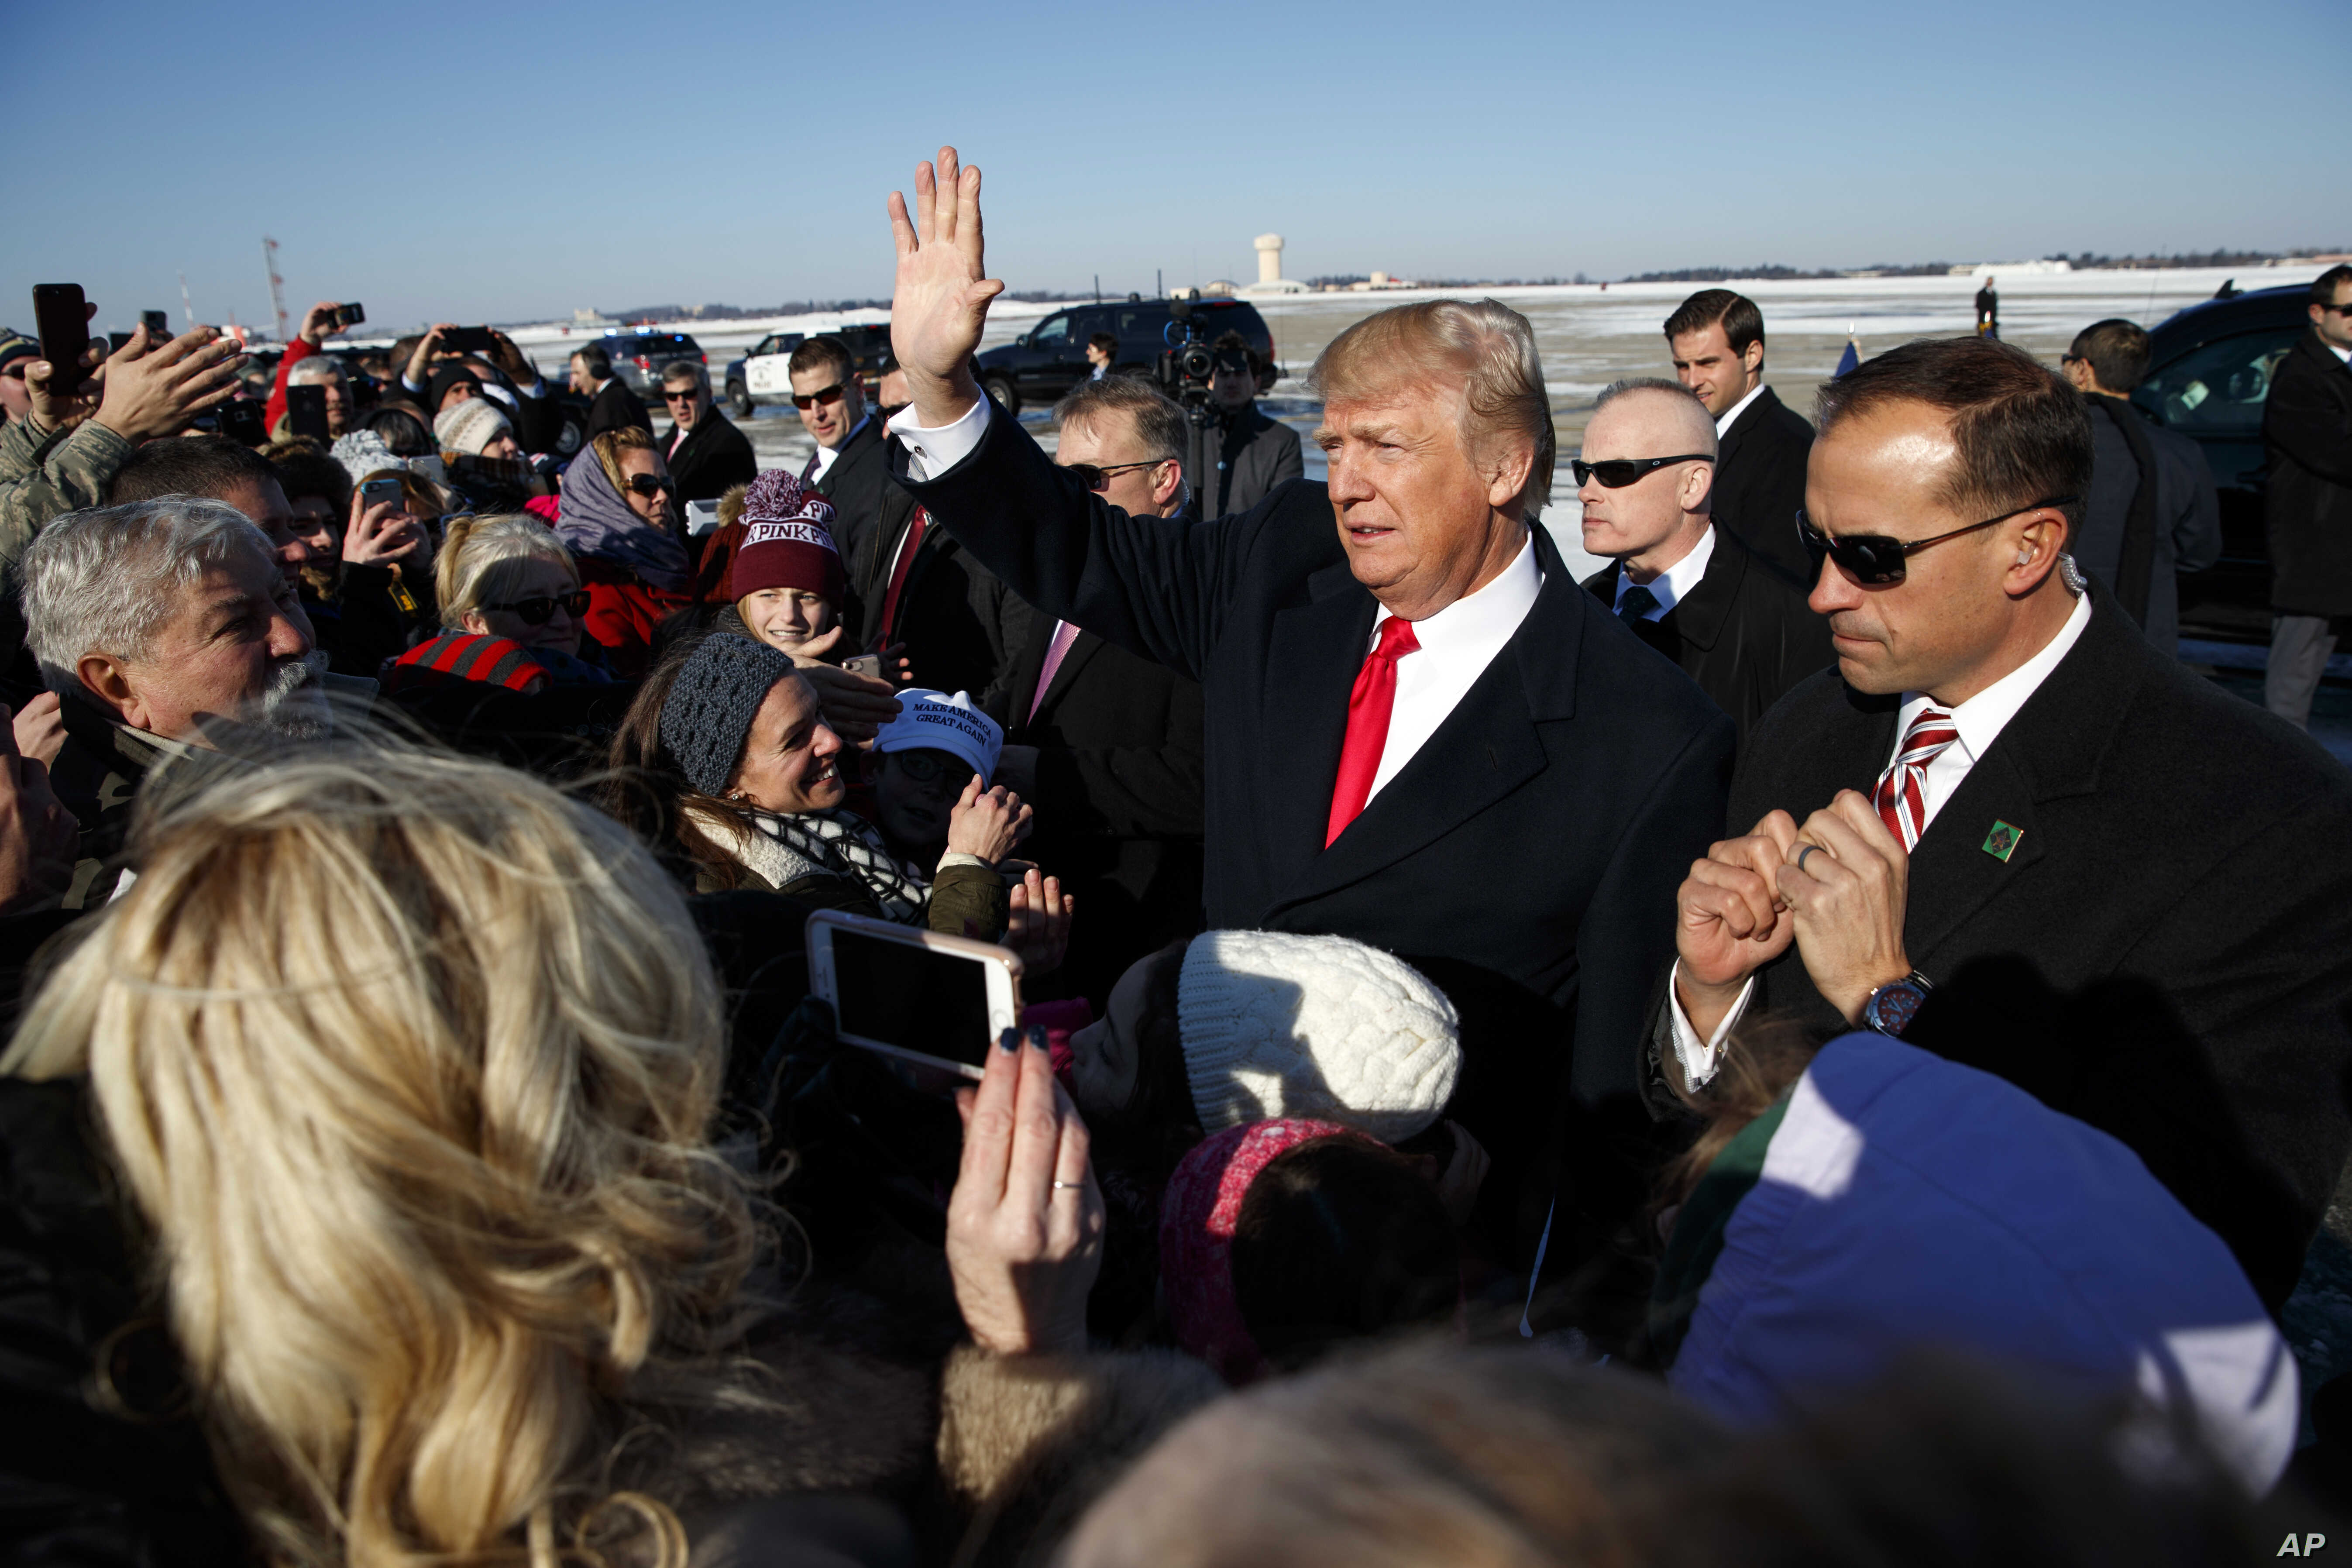 President Donald Trump waves to supporters after arriving at Pittsburgh International Airport, Jan. 18, 2018, in Pittsburgh.